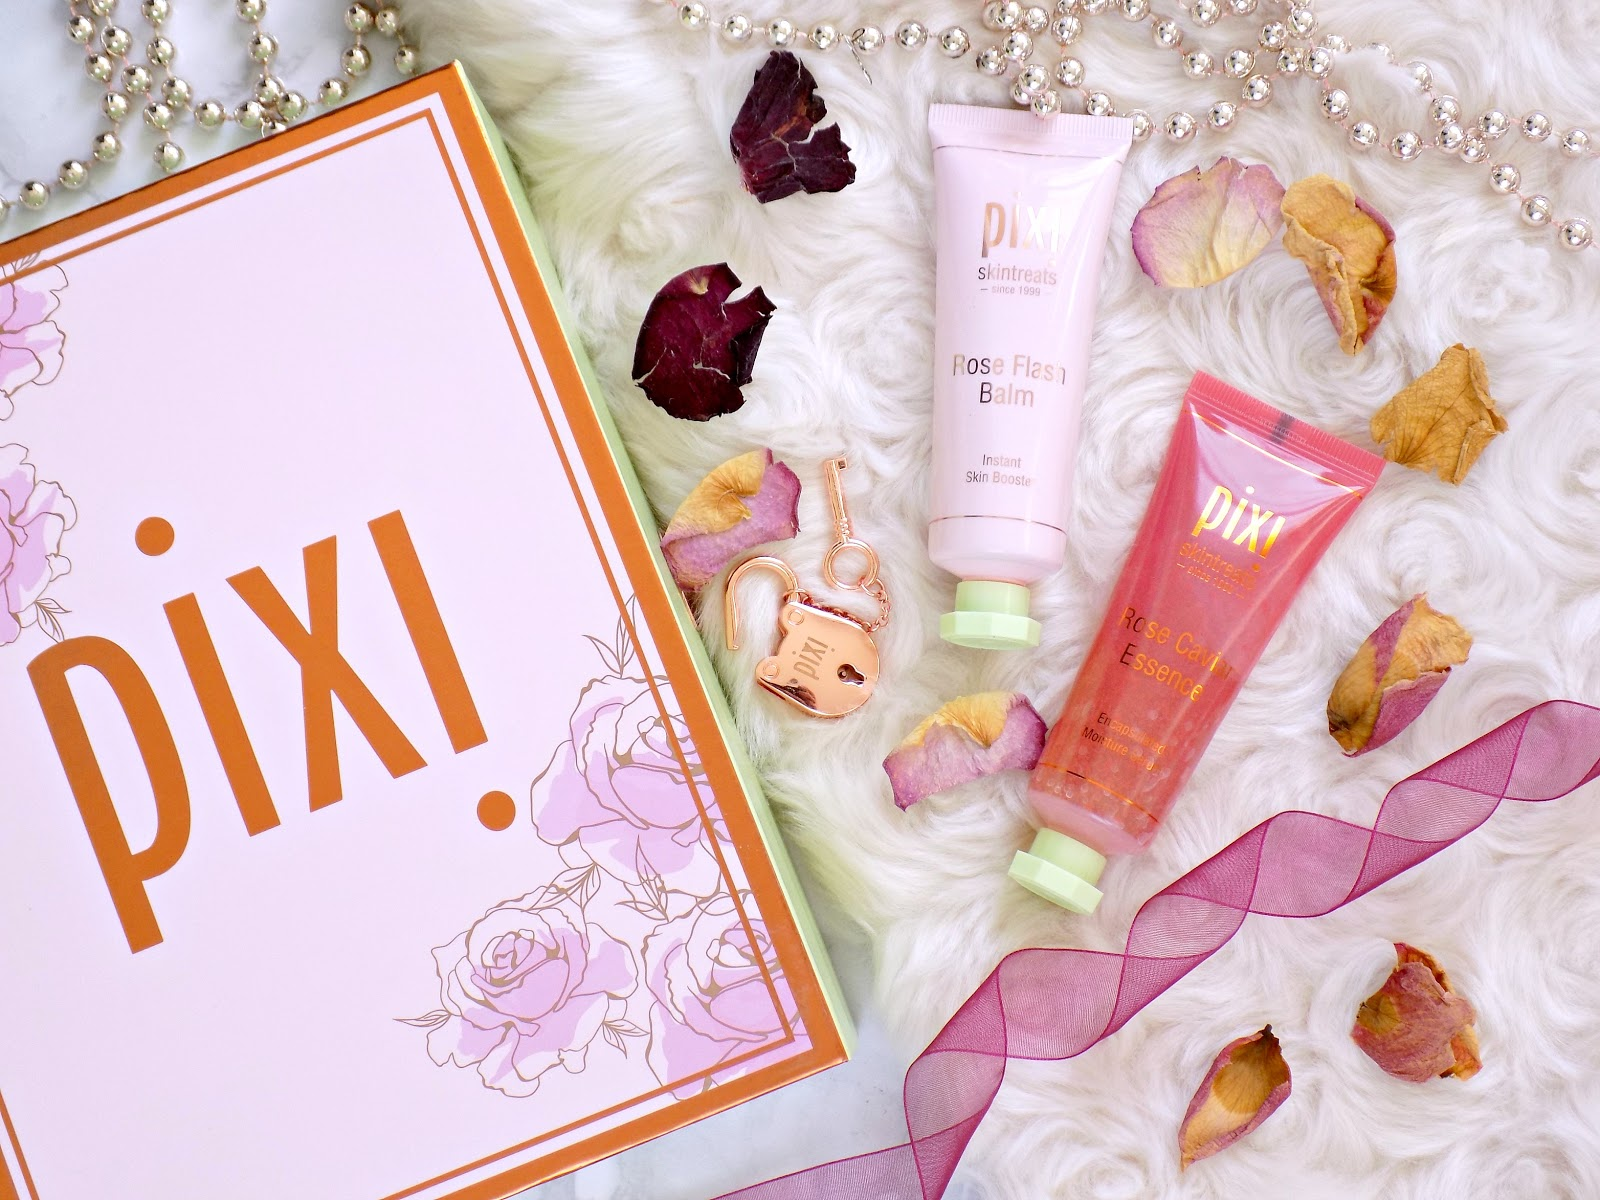 Pixi Rose Flash Balm, Pixi Rose Caviar Essence